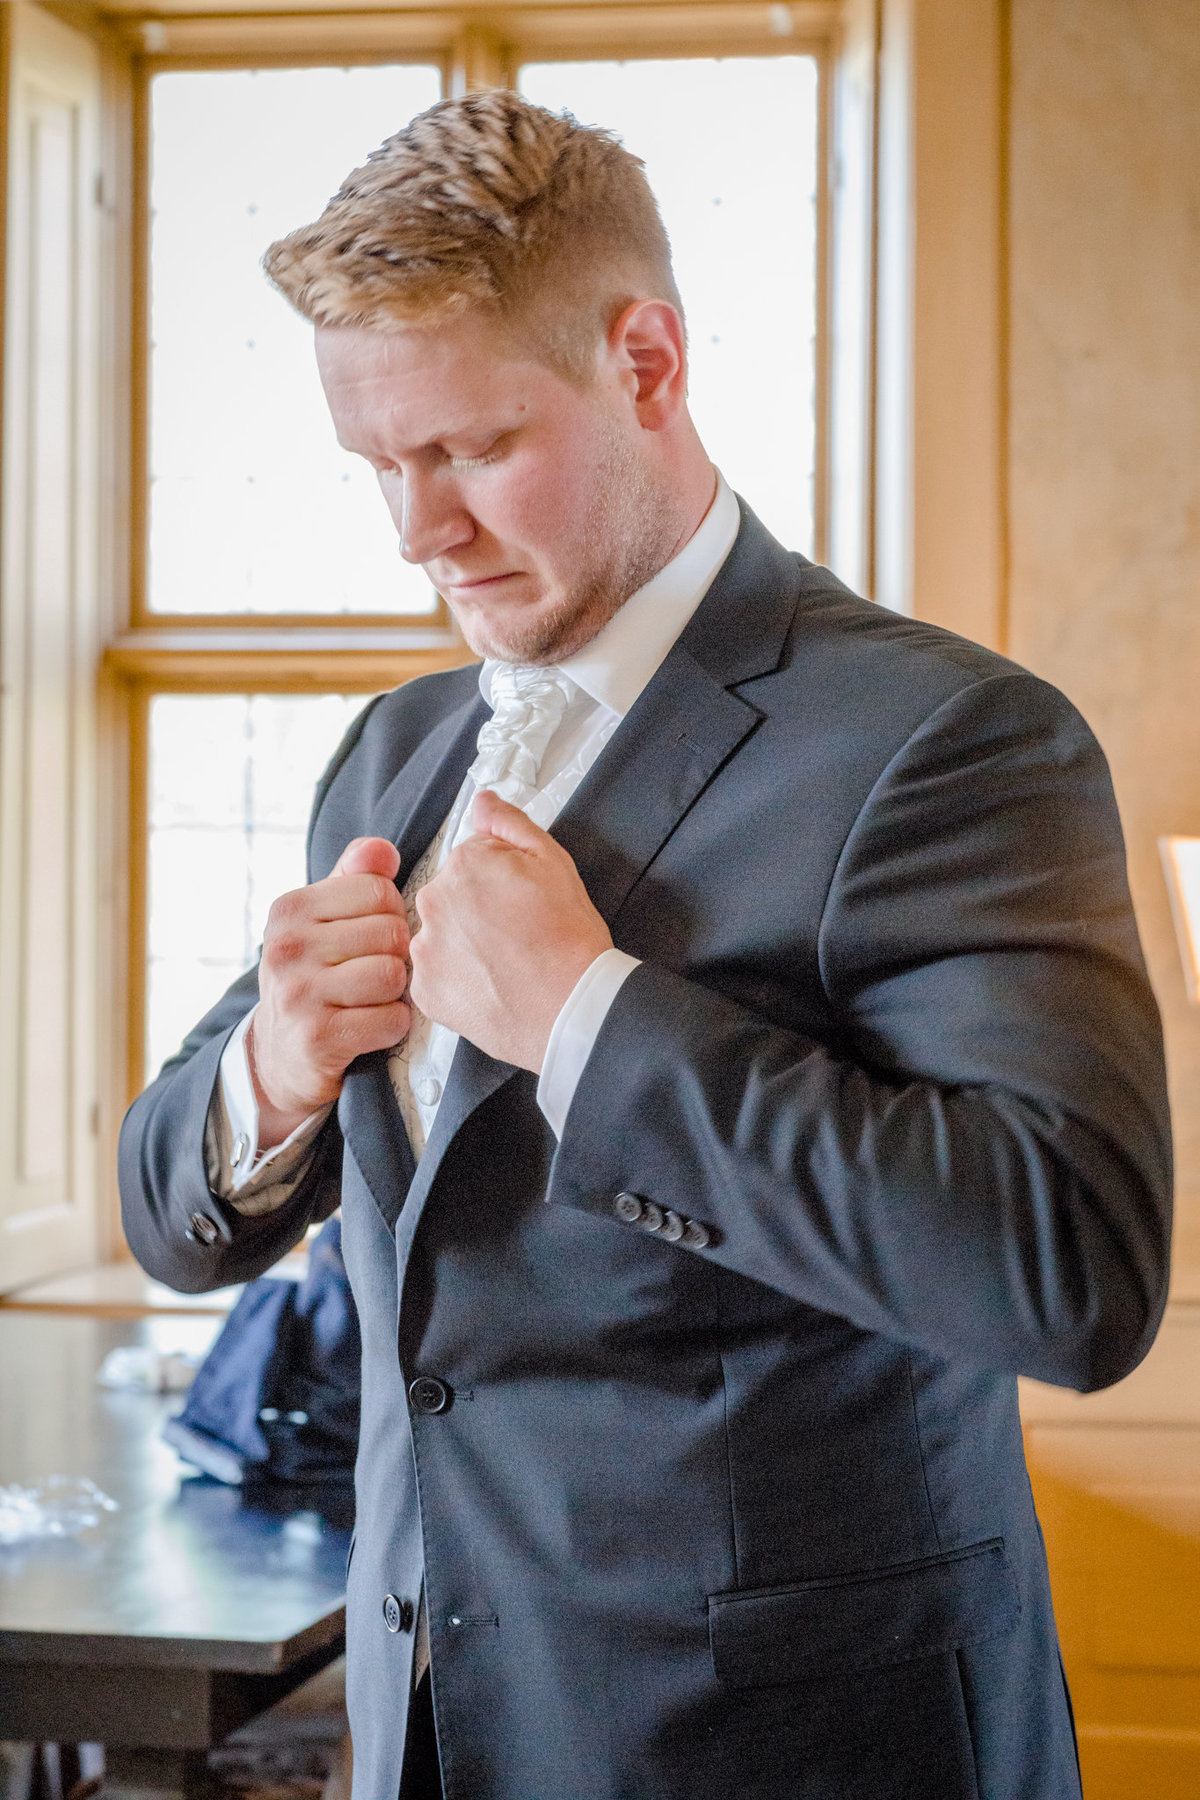 Groom putting his suit right